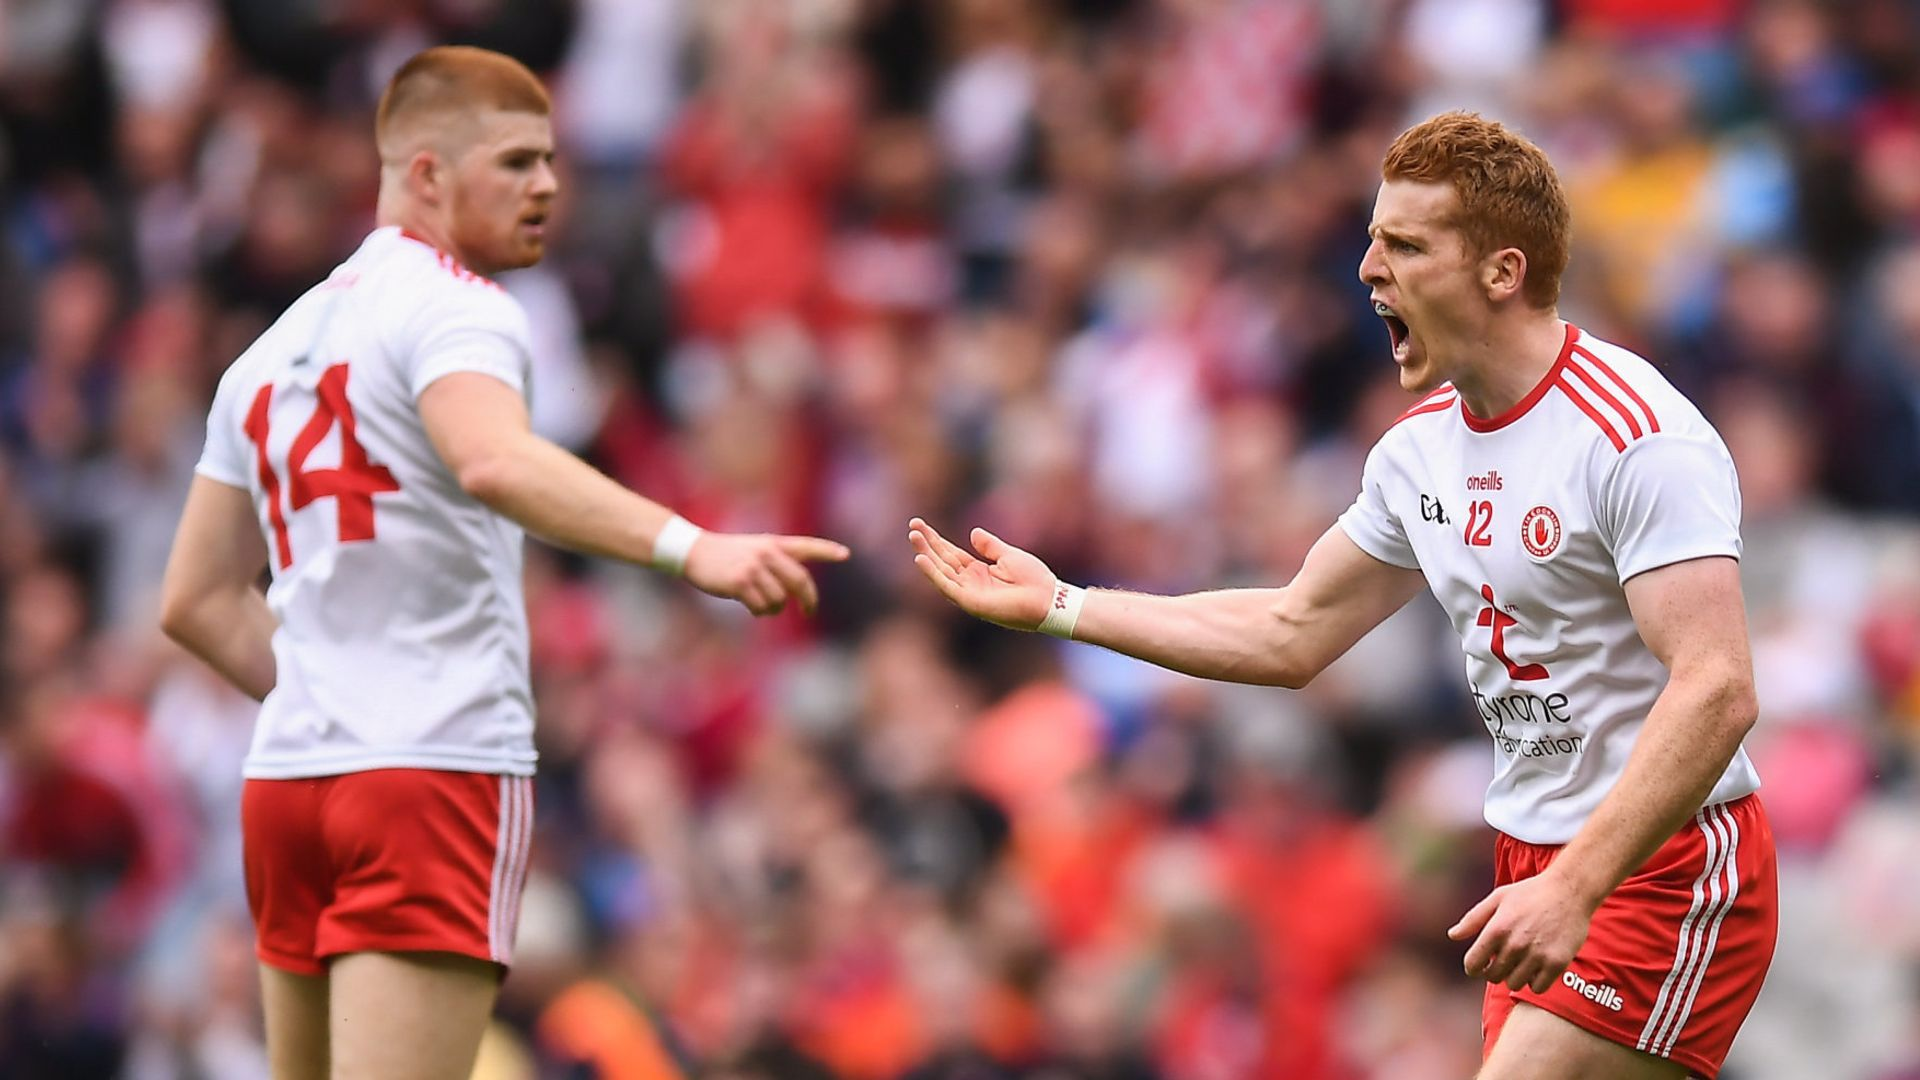 Railway Cup: VOTE for your dream Ulster XV